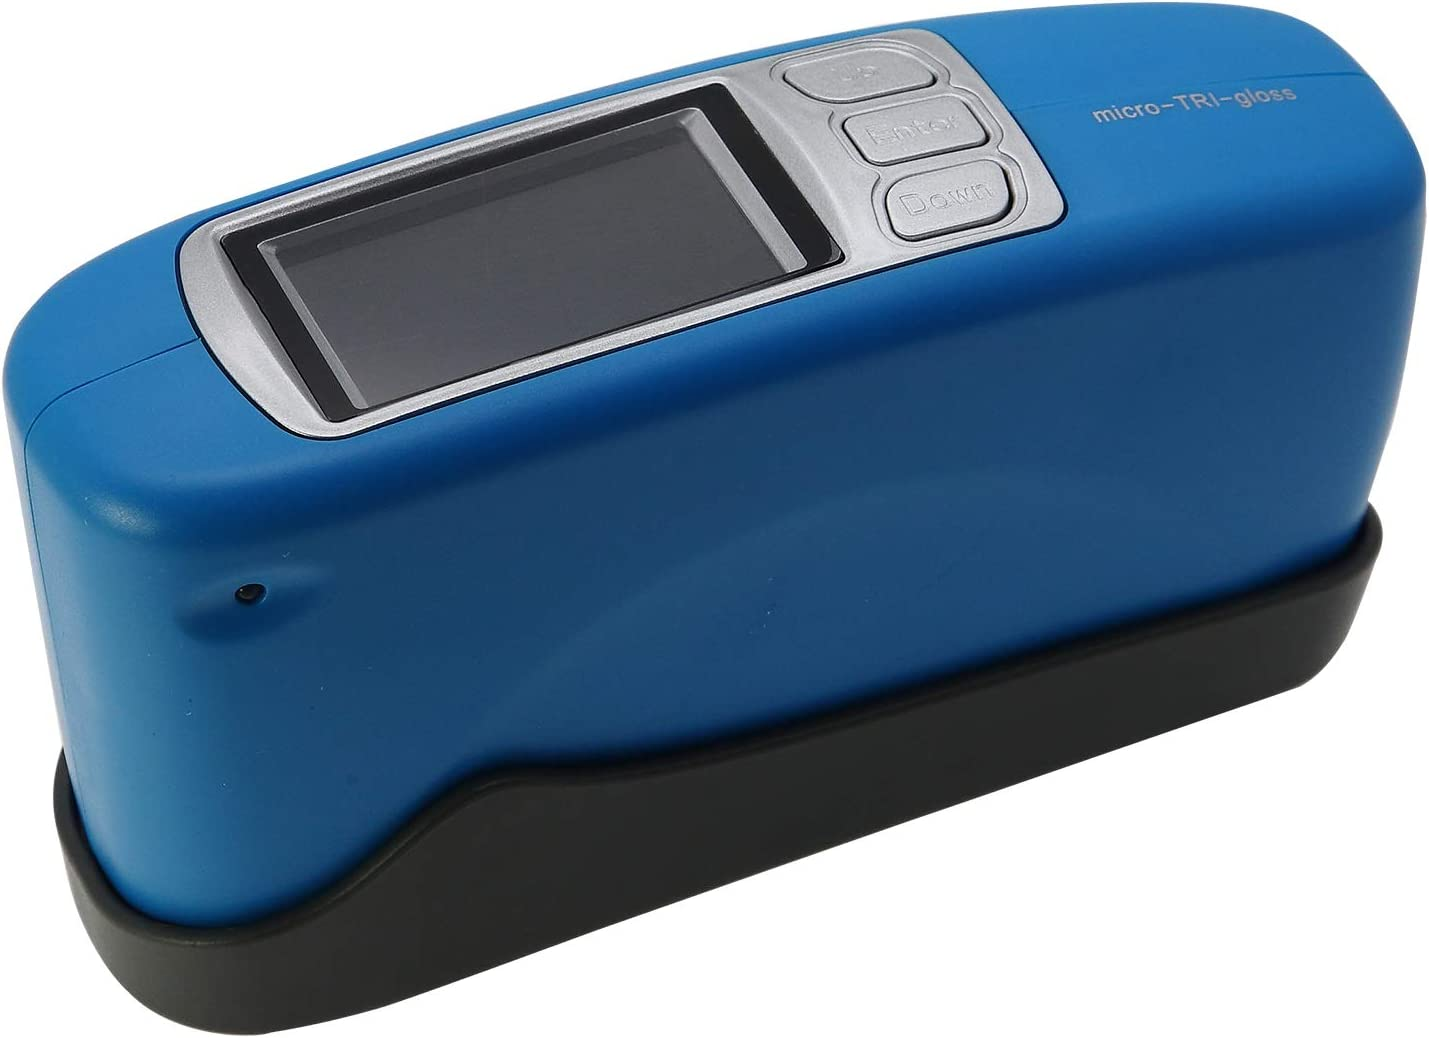 AMTAST Precise Gloss Meter 20 60 85 Max 90% OFF USB Angle Many popular brands with Degree Test